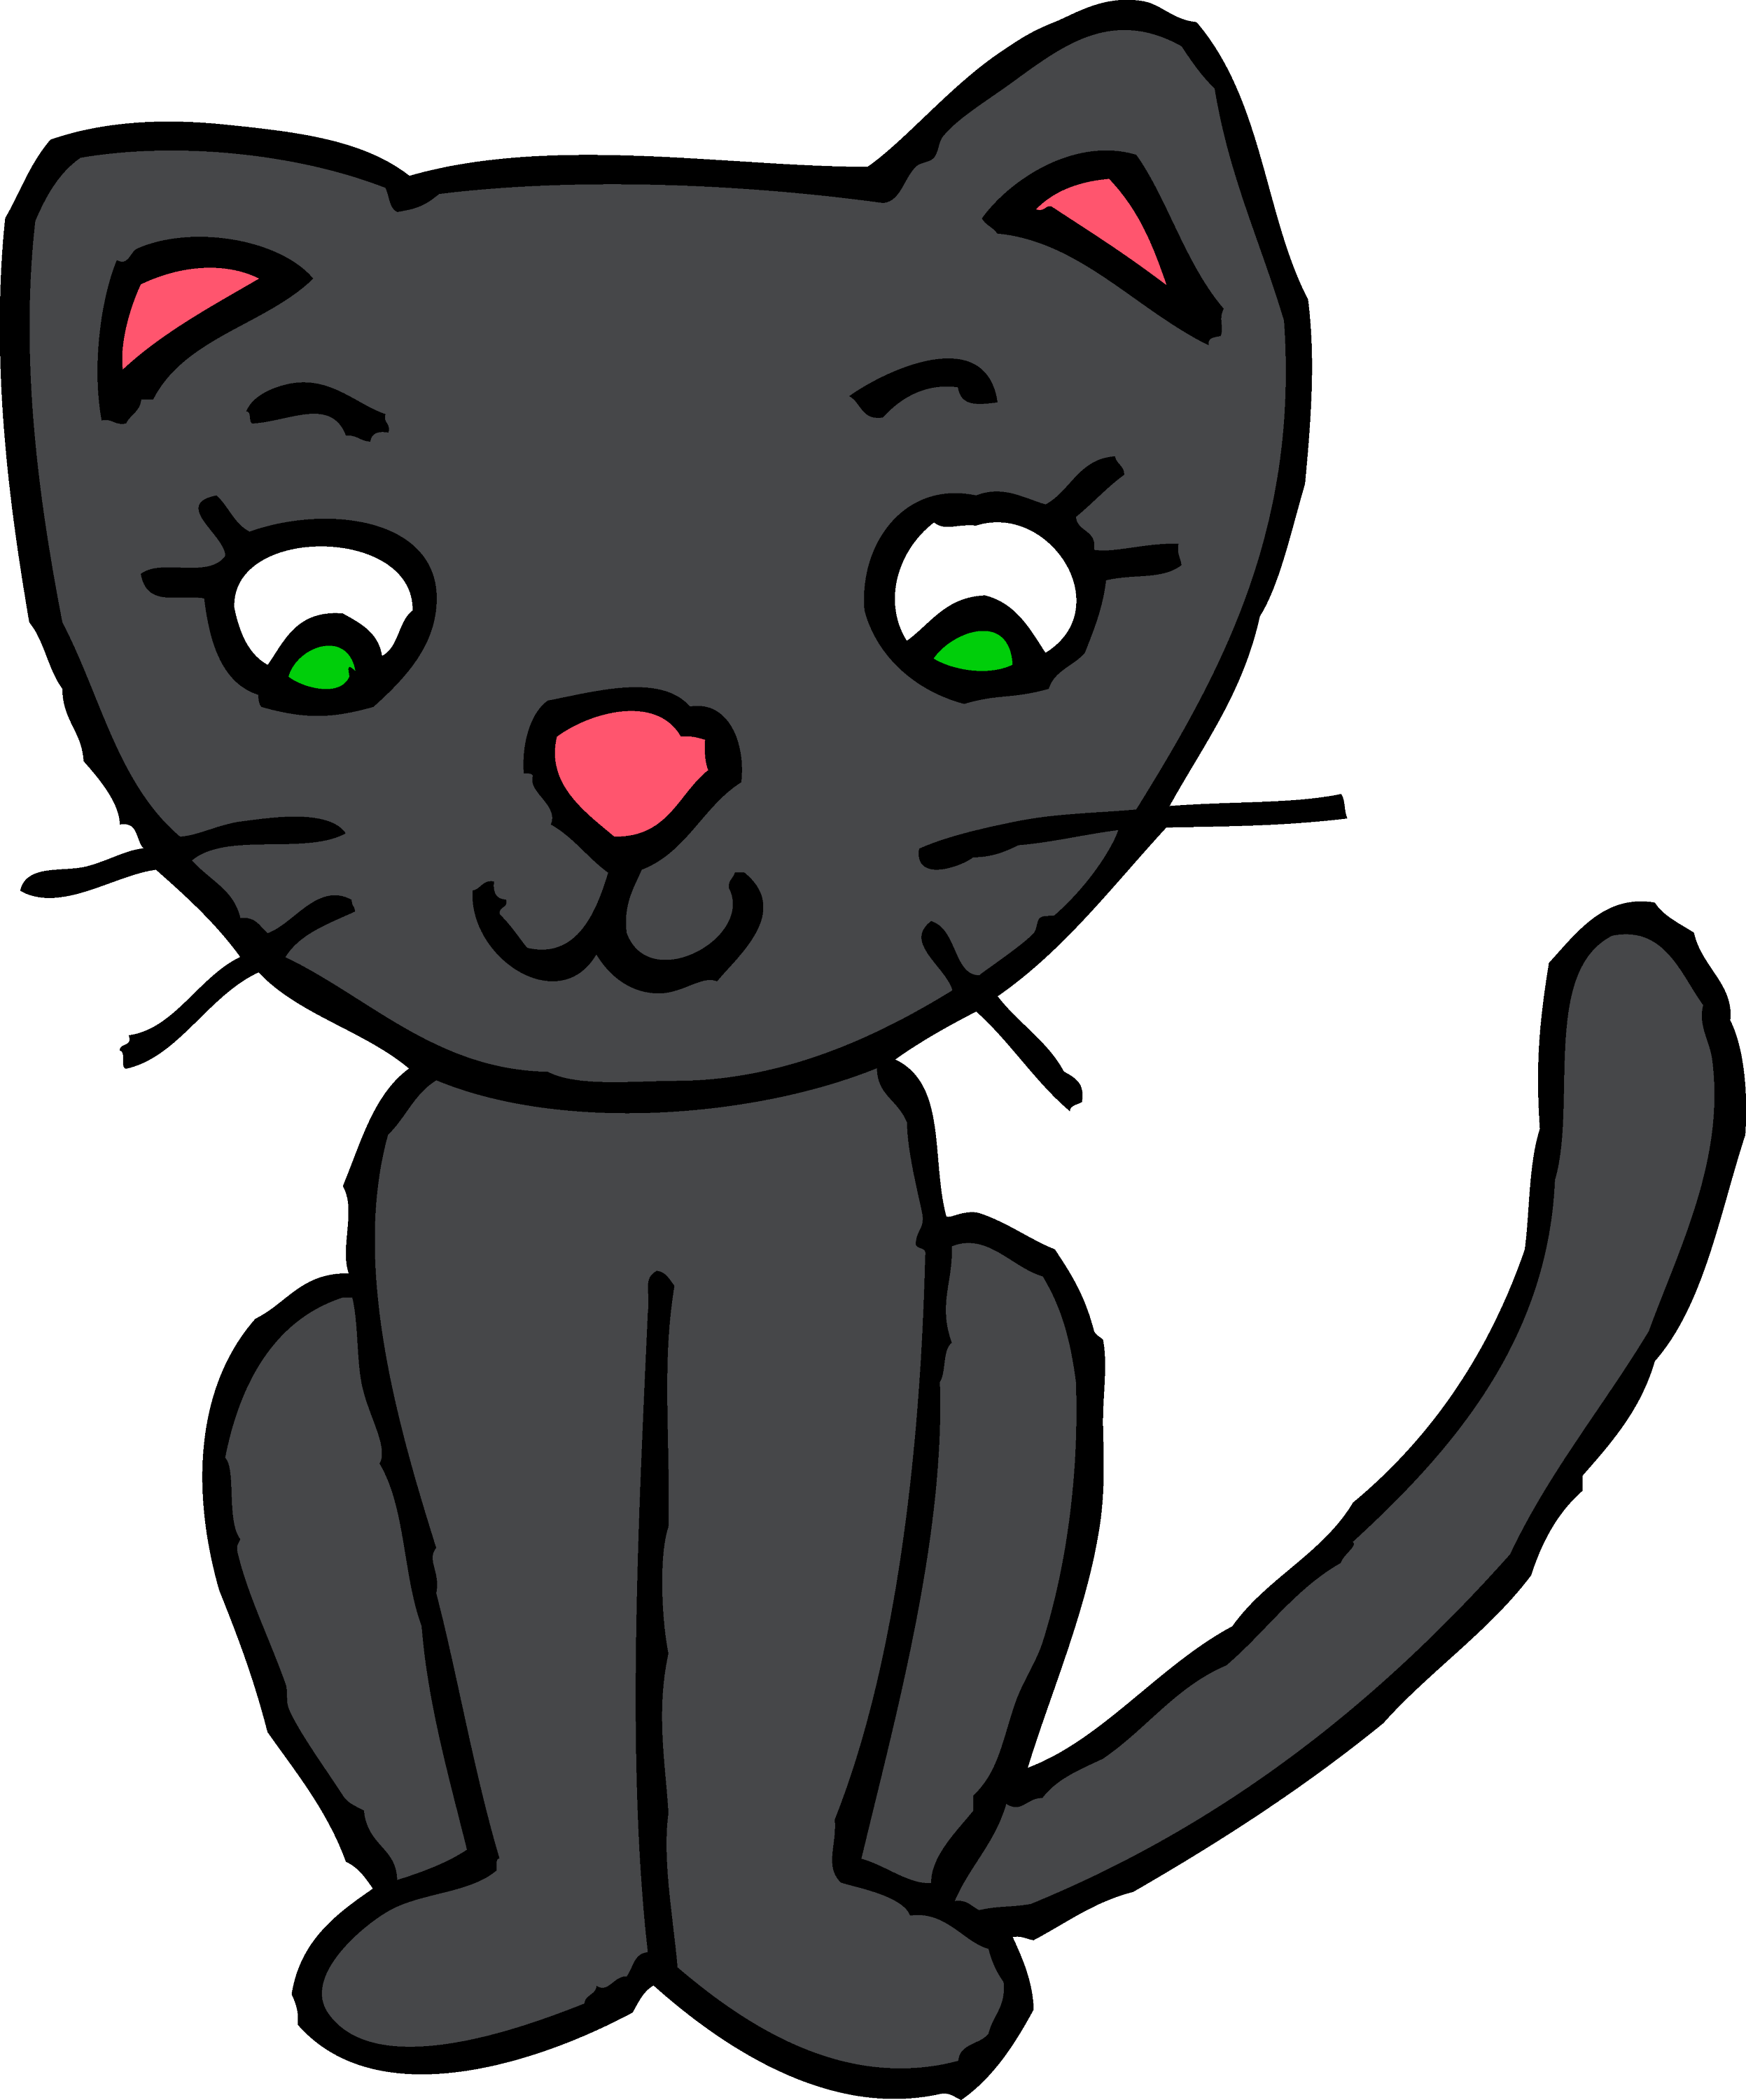 cute black kitty cat clipart free clip art rh sweetclipart com kitty cat clipart kitty cat clipart black and white